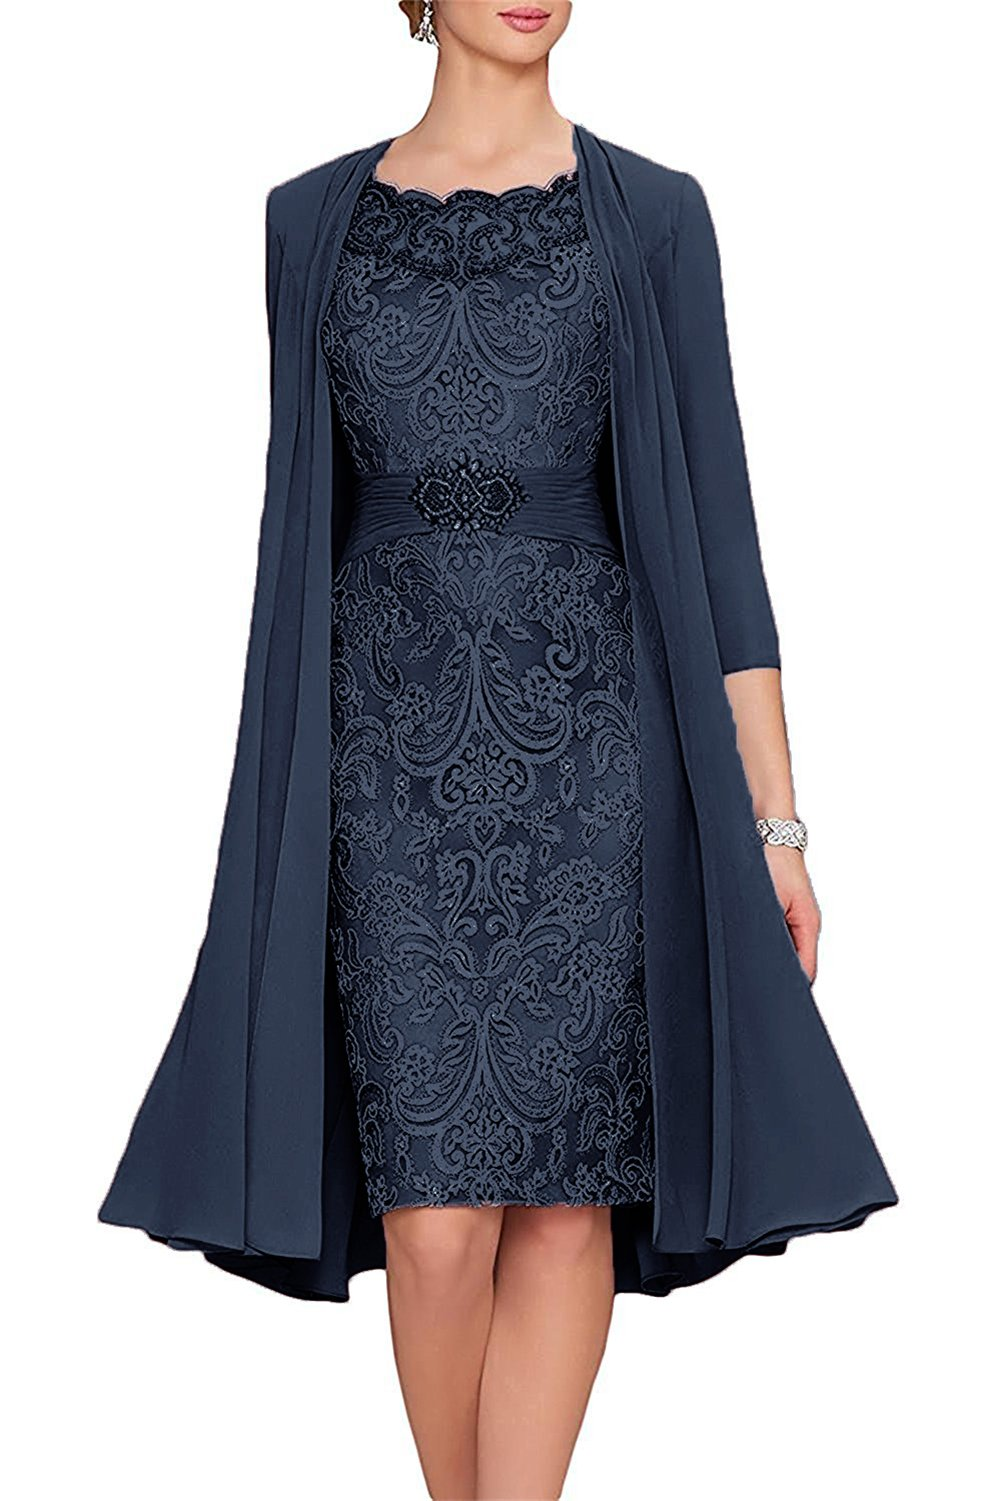 APXPF Women\u0027s Tea Length Mother of The Bride Dresses Two Pieces with Jacket  Navy US4